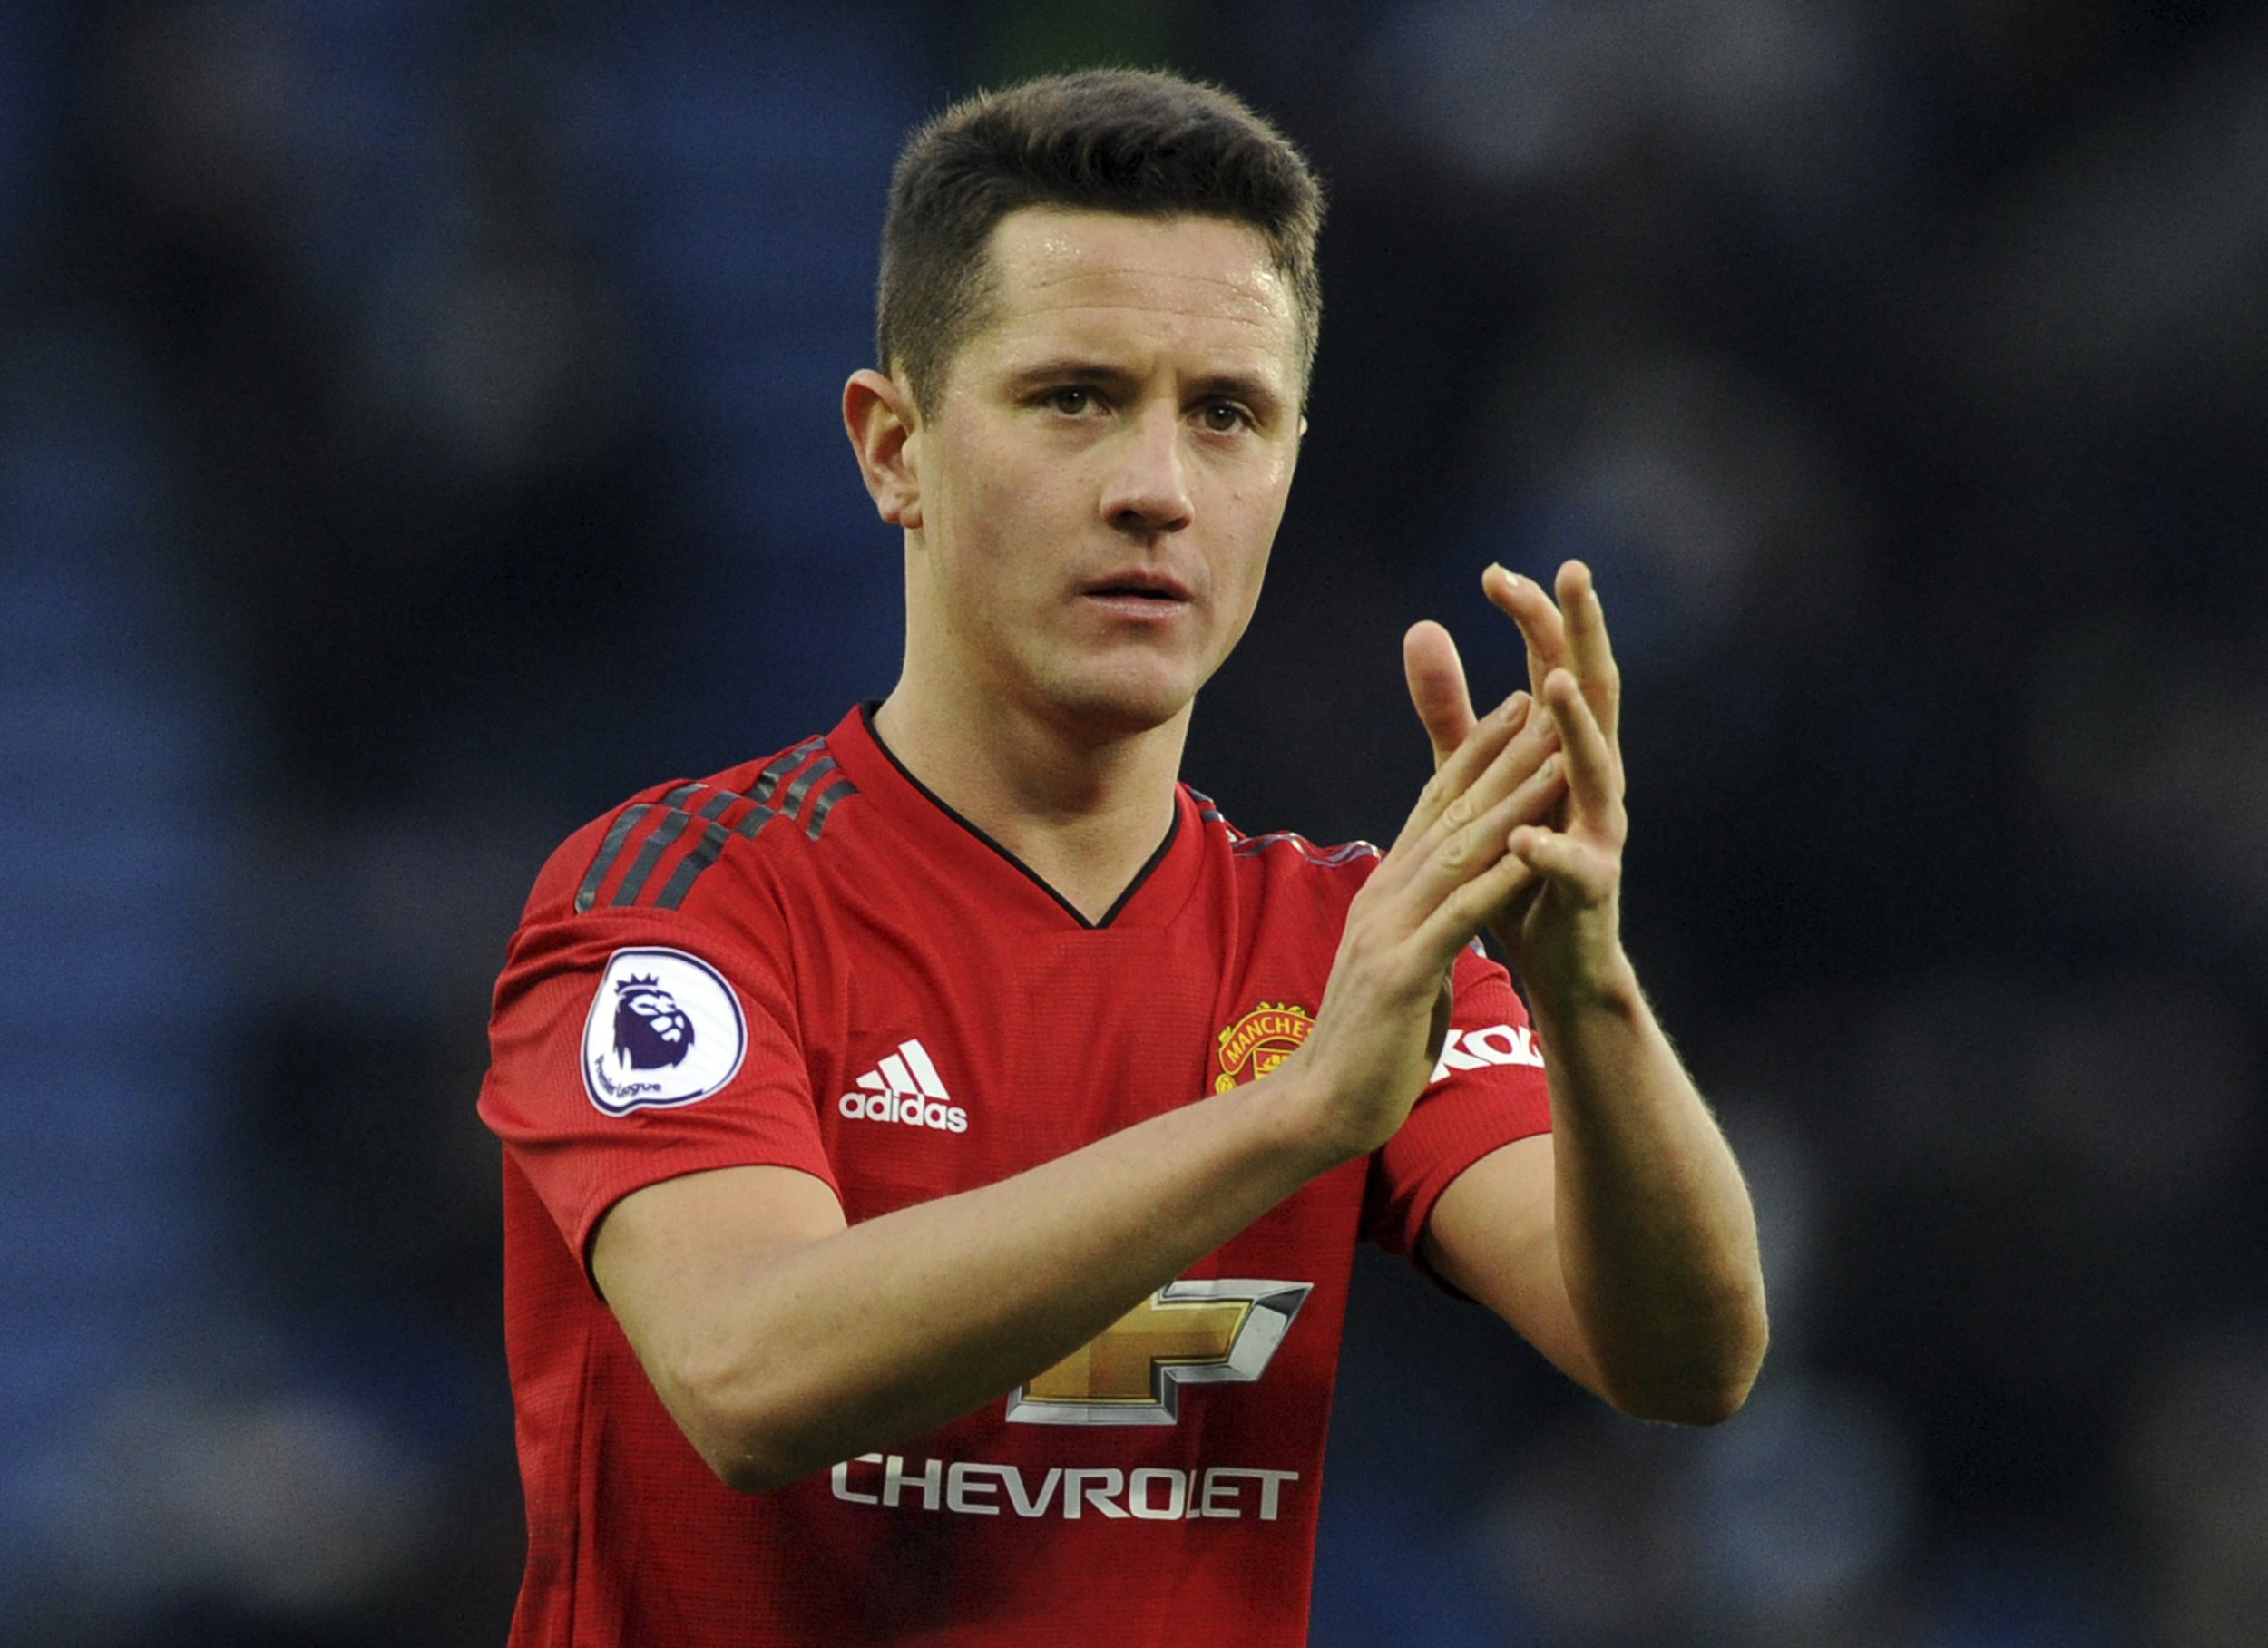 Manchester United's Ander Herrera during a English Premier League soccer compare between Leicester City and Manchester United during a King Power Stadium in Leicester, England, Sunday, Feb 3, 2019. (AP Photo/Rui Vieira)